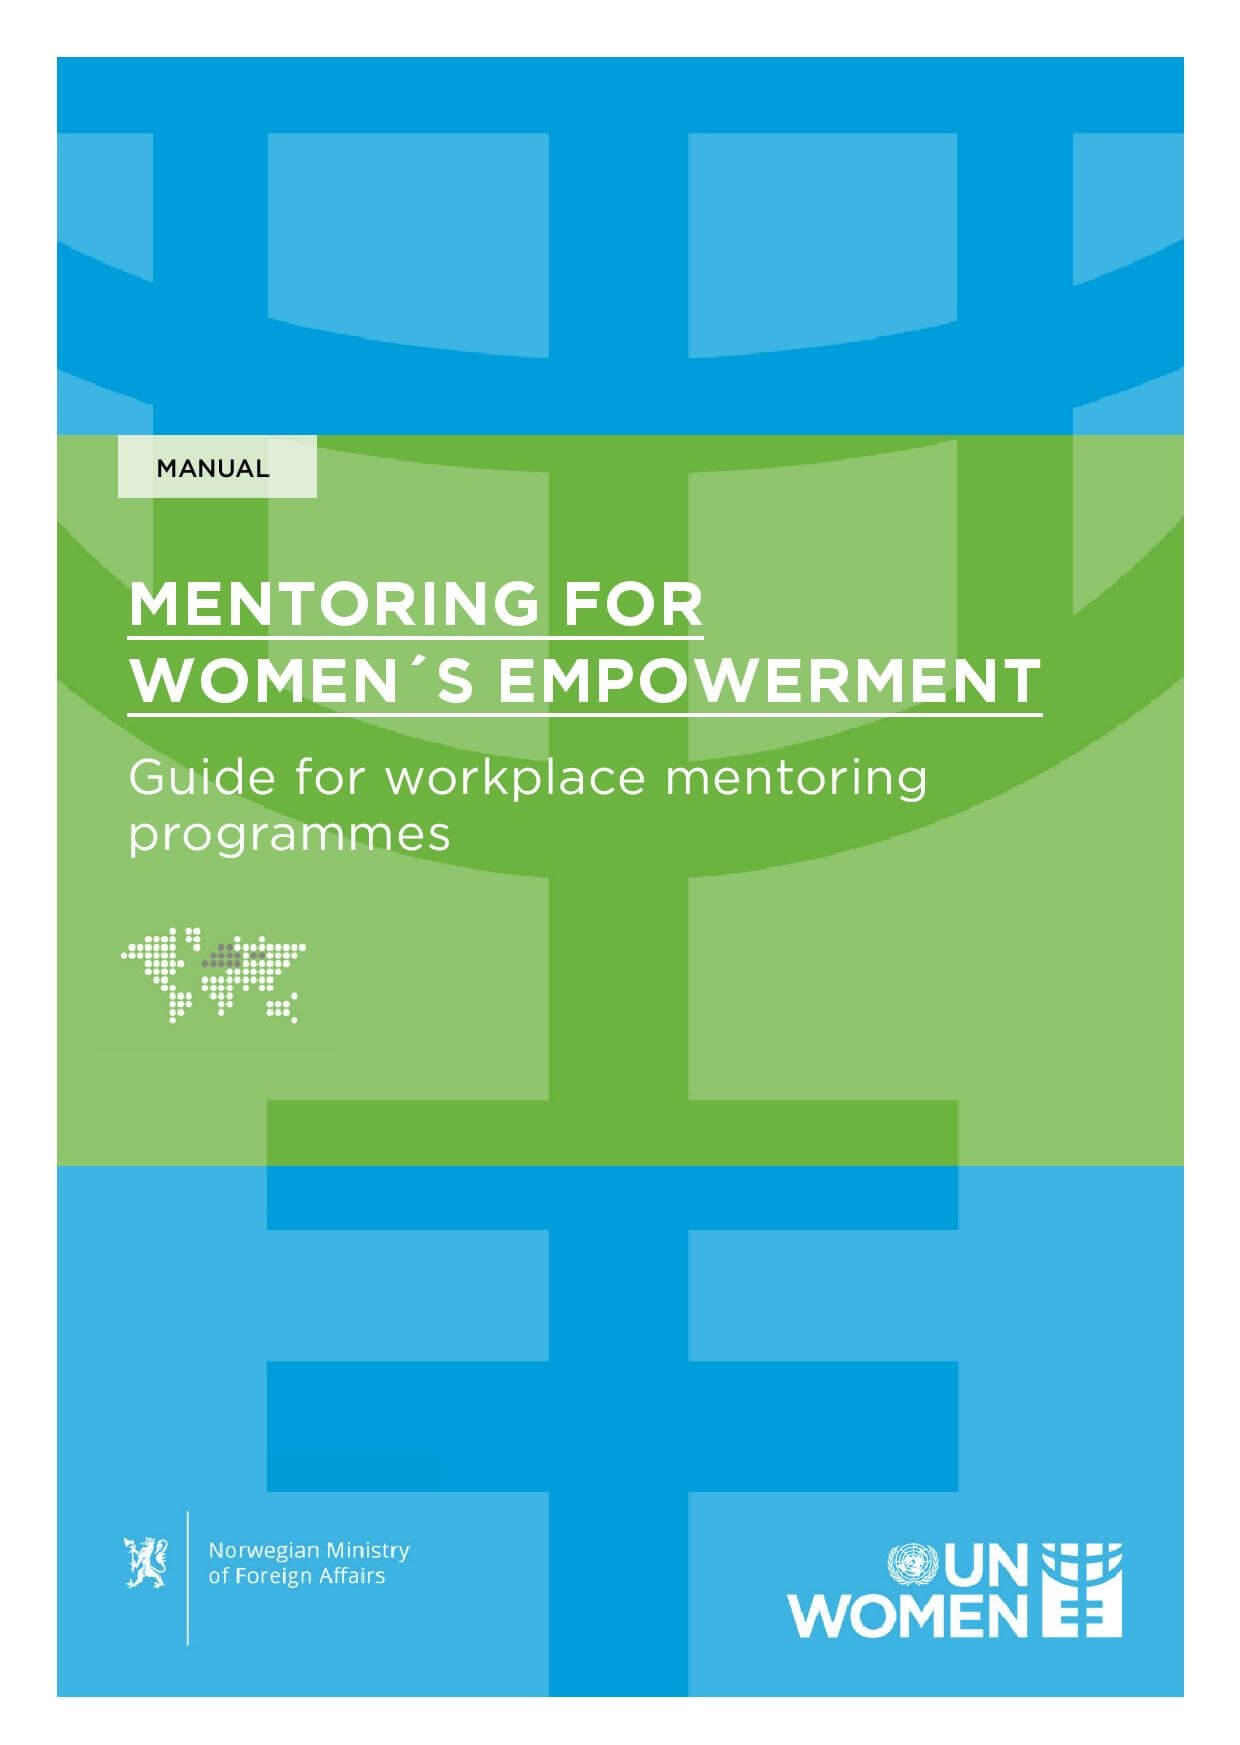 Mentoring for Women's Empowerment, Guide for workplace mentoring programmes